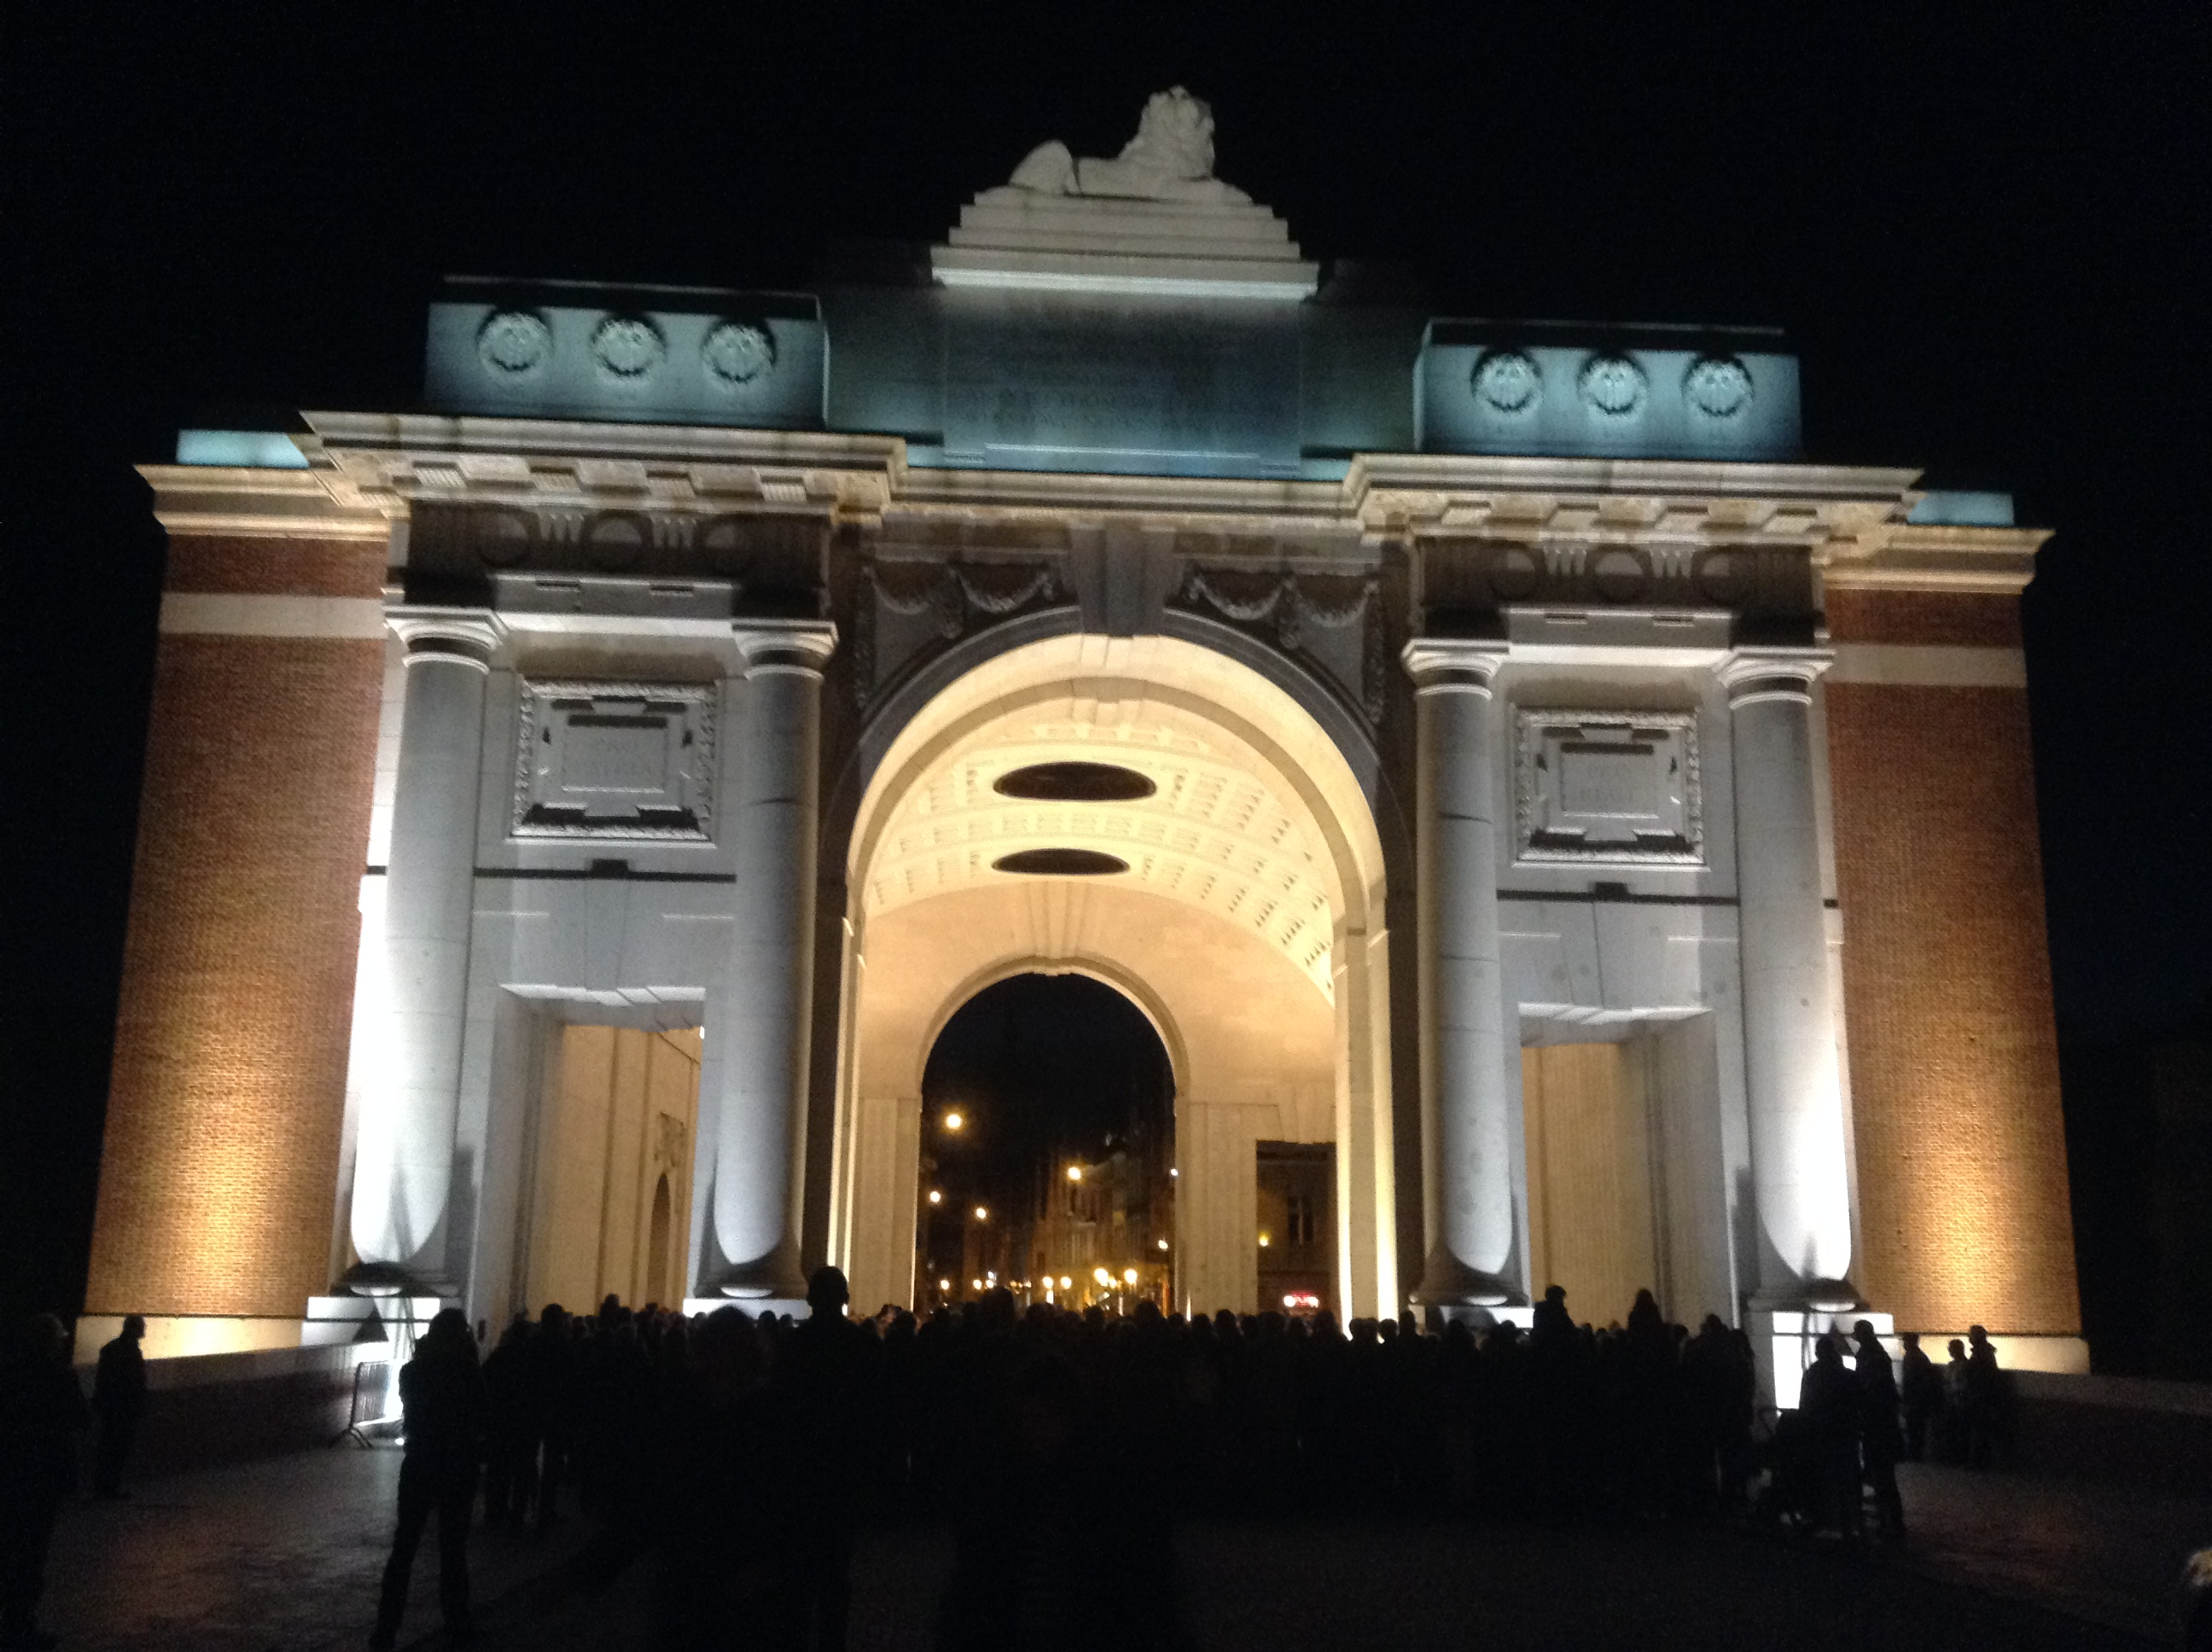 02 Last Post Ceremony at the Menin Gate